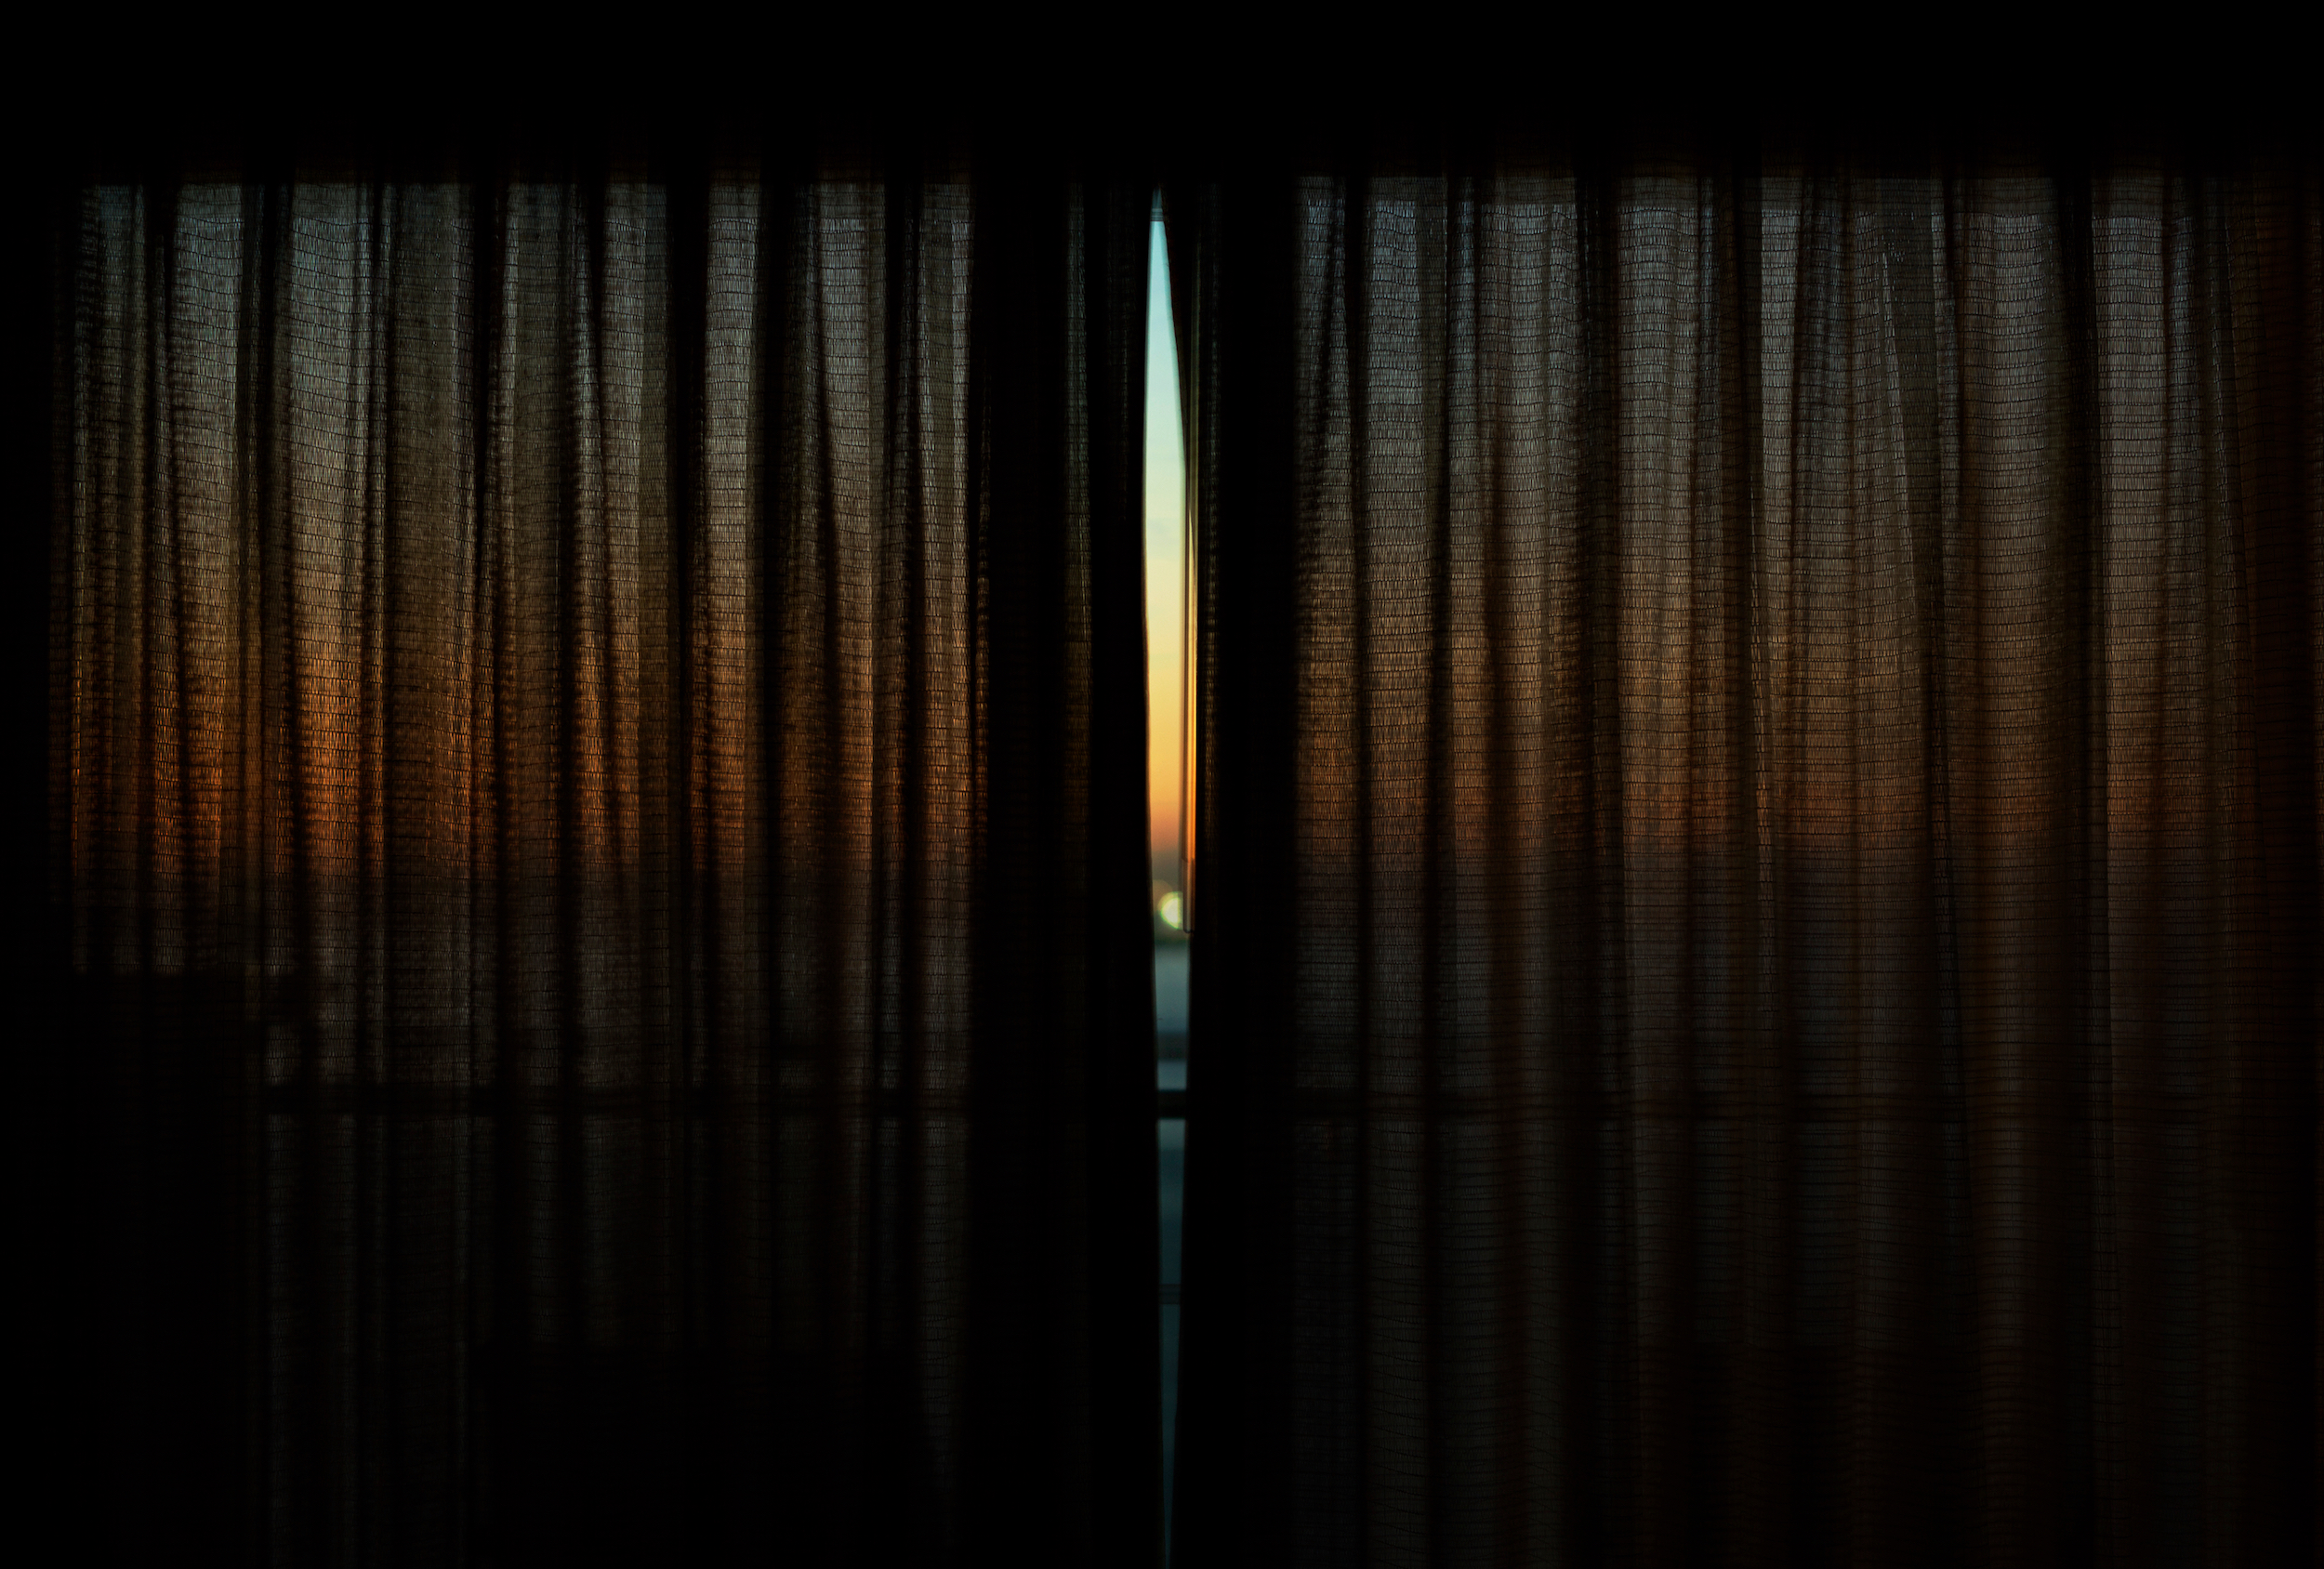 Untitled #8  (Nowhere) , 2012/ archival pigment print, 41 x 60 1/4 inches, edition of 3 plus 2 AP